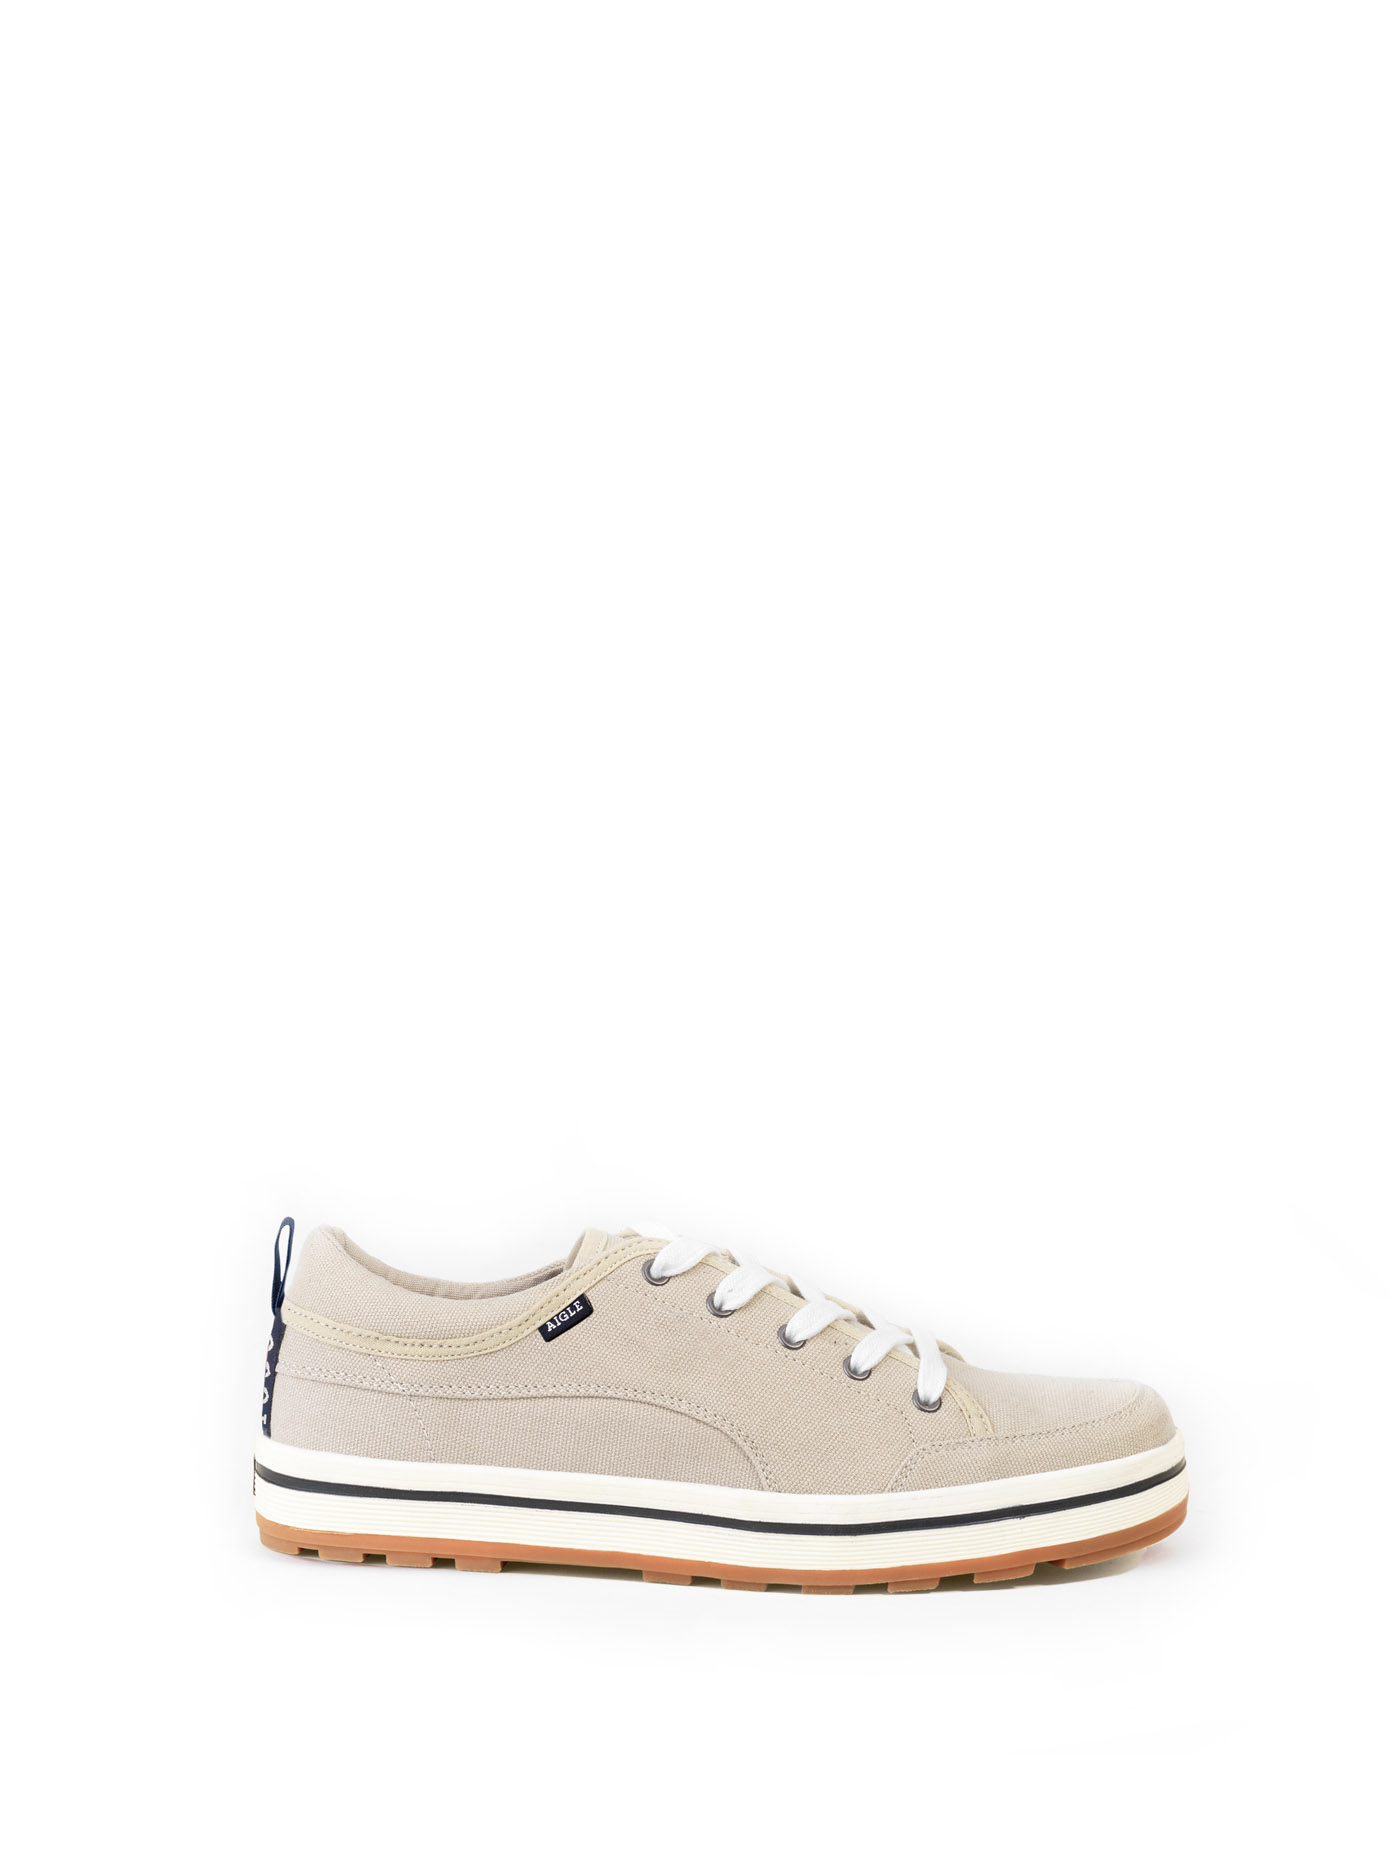 Chaussures homme, Chaussures cuir homme | AIGLE